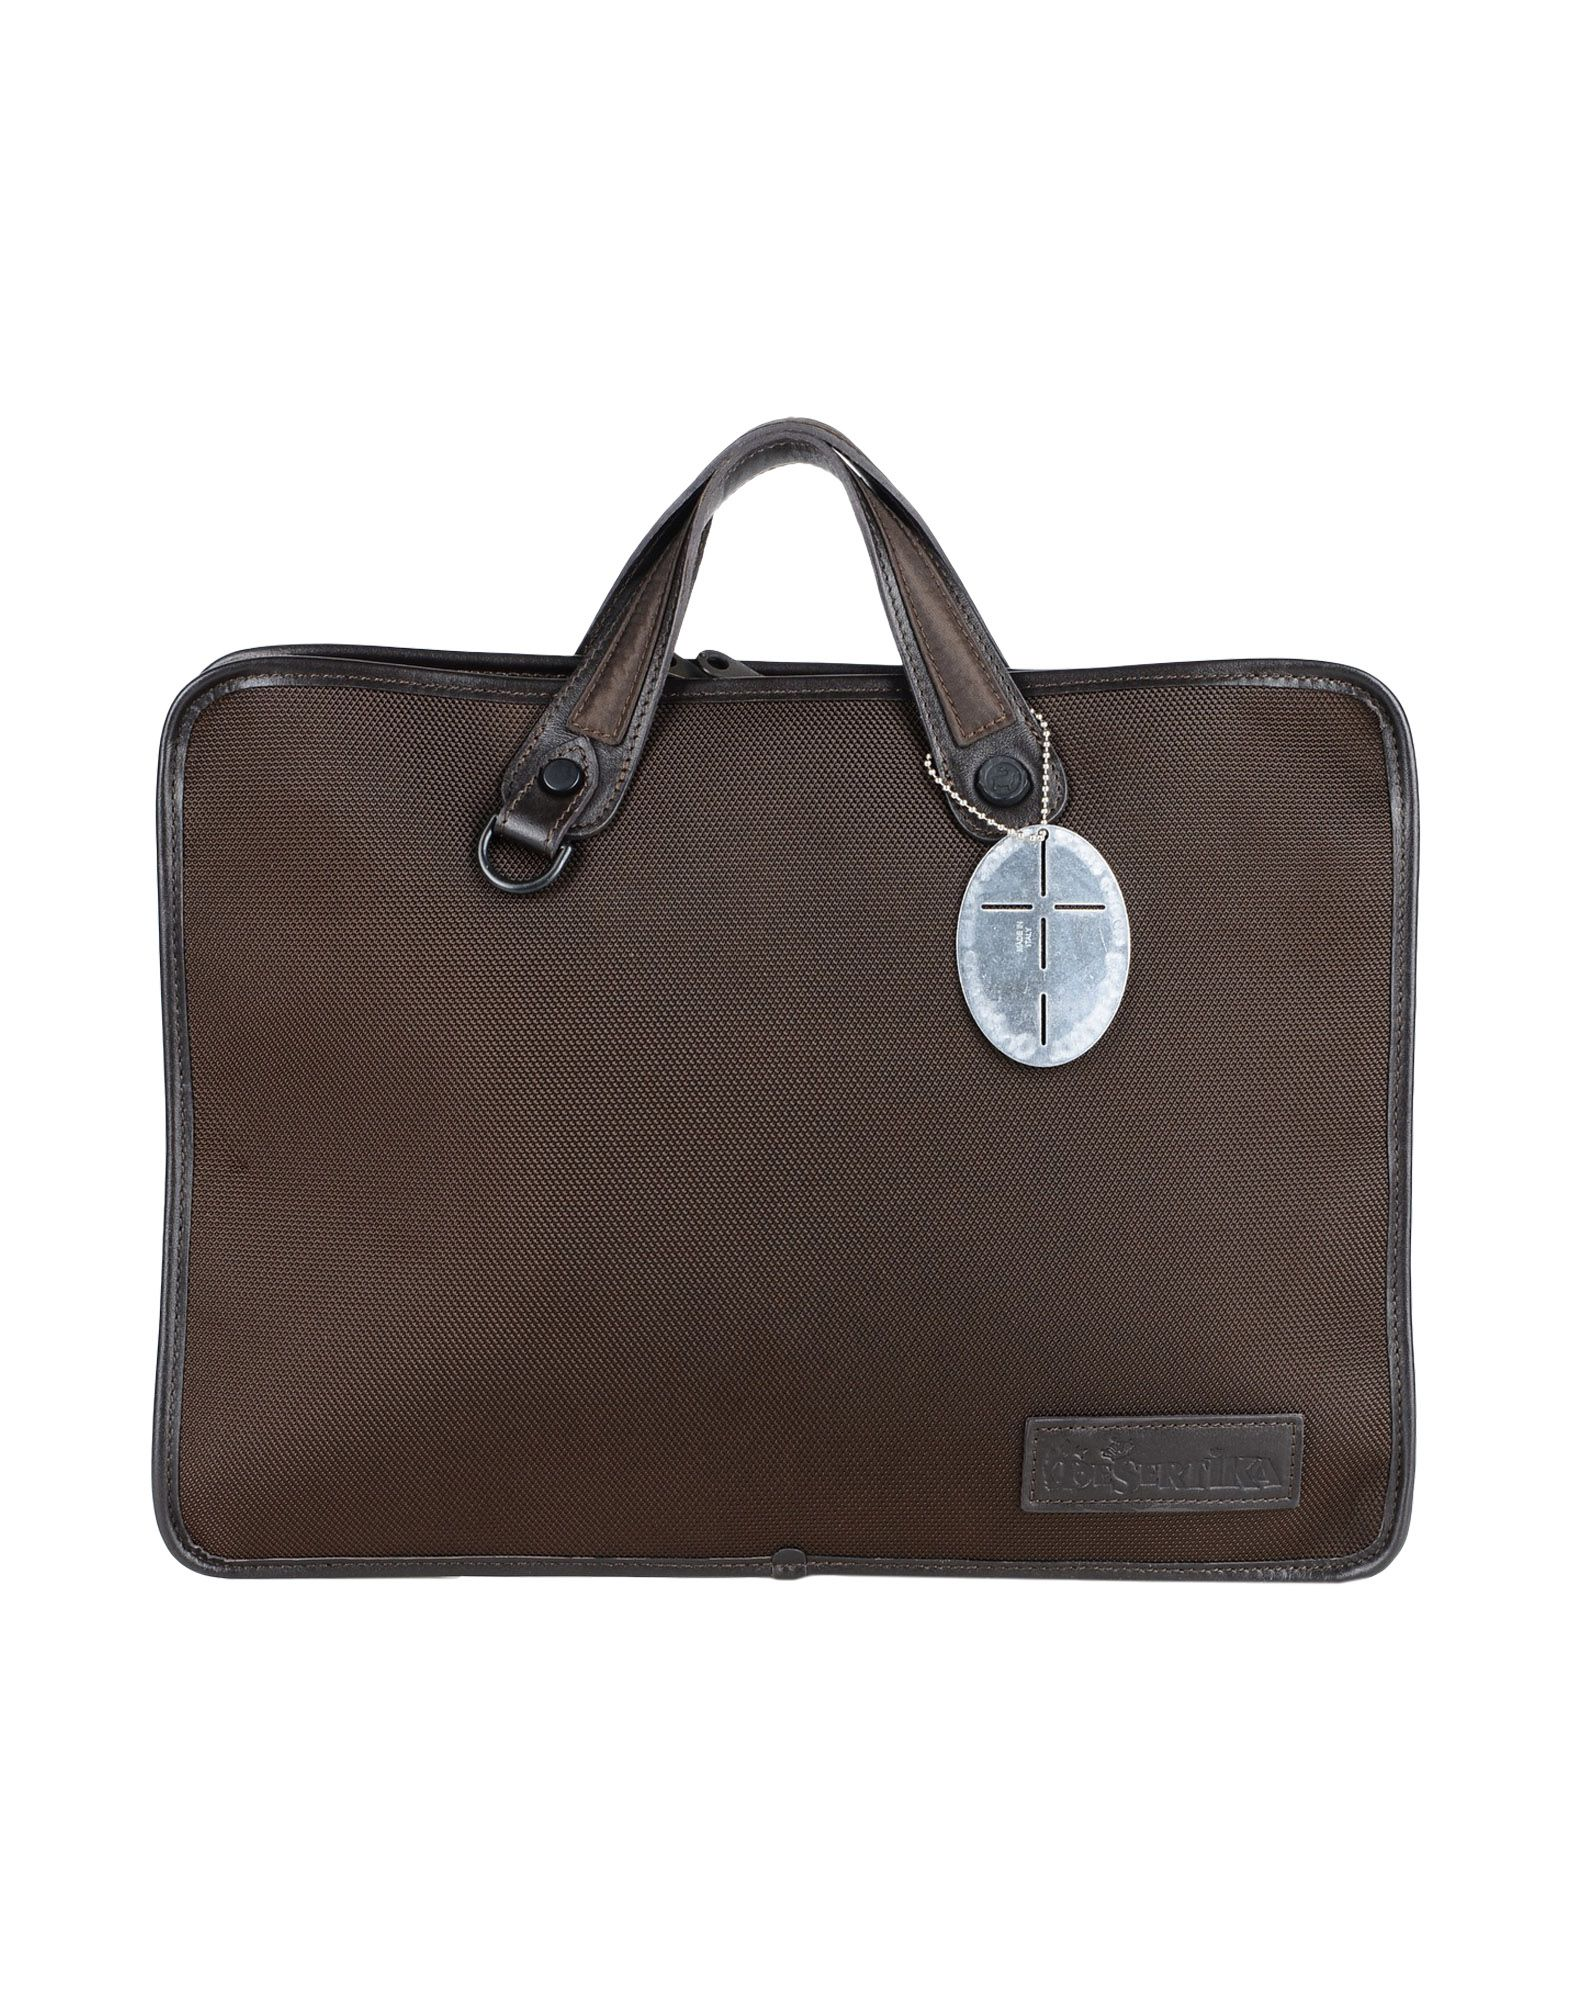 DESERTIKA Work Bag in Dark Brown